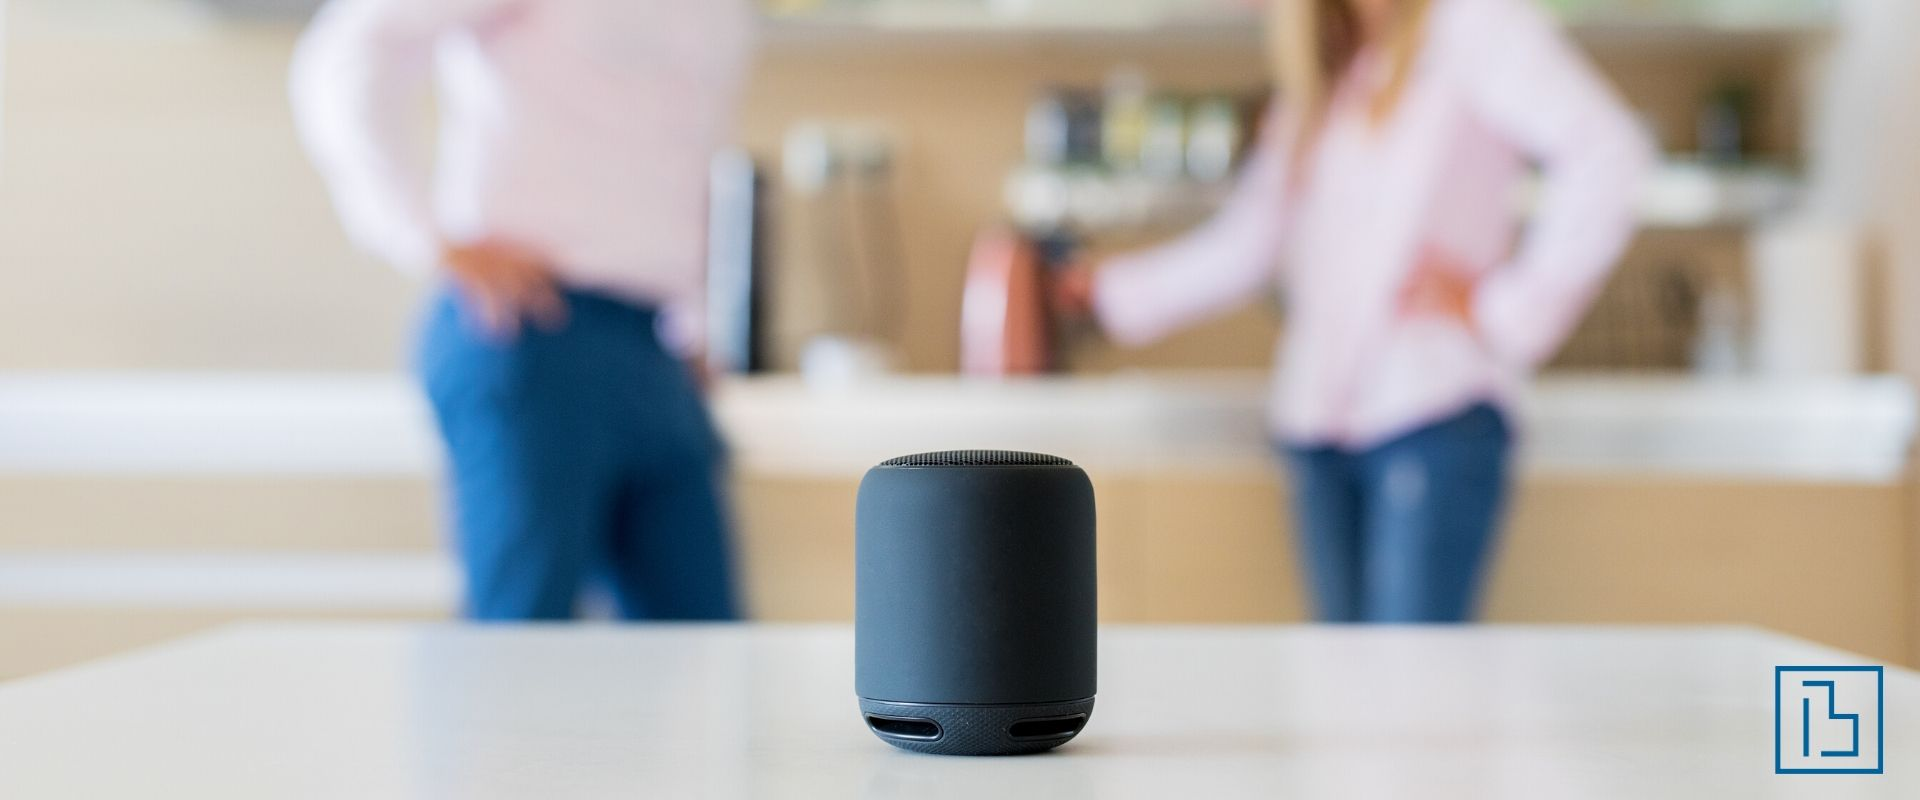 Smart home speaker on a counter